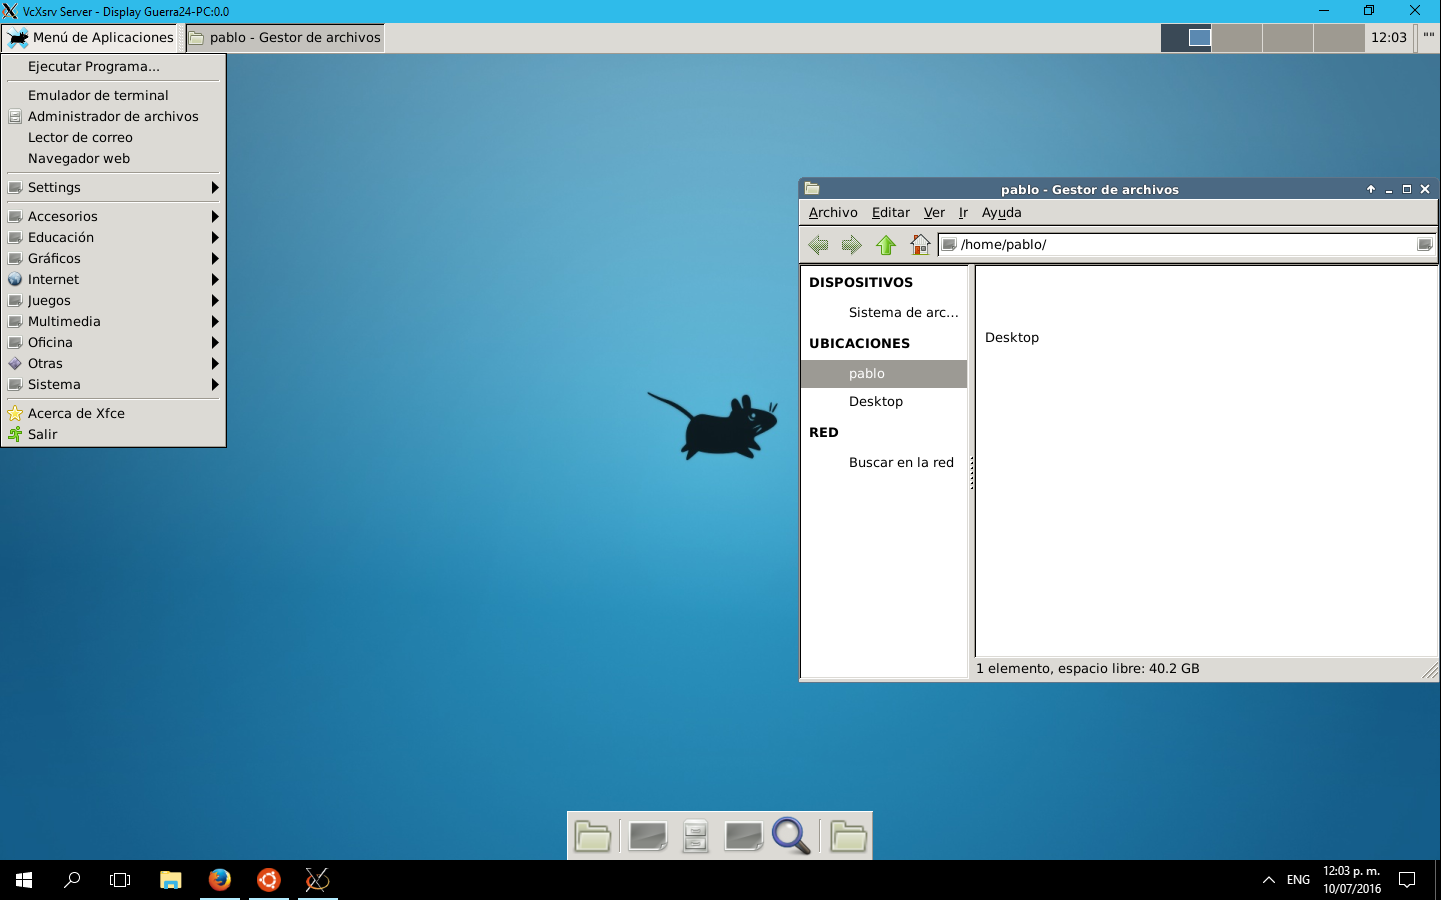 xfce4 in Windows